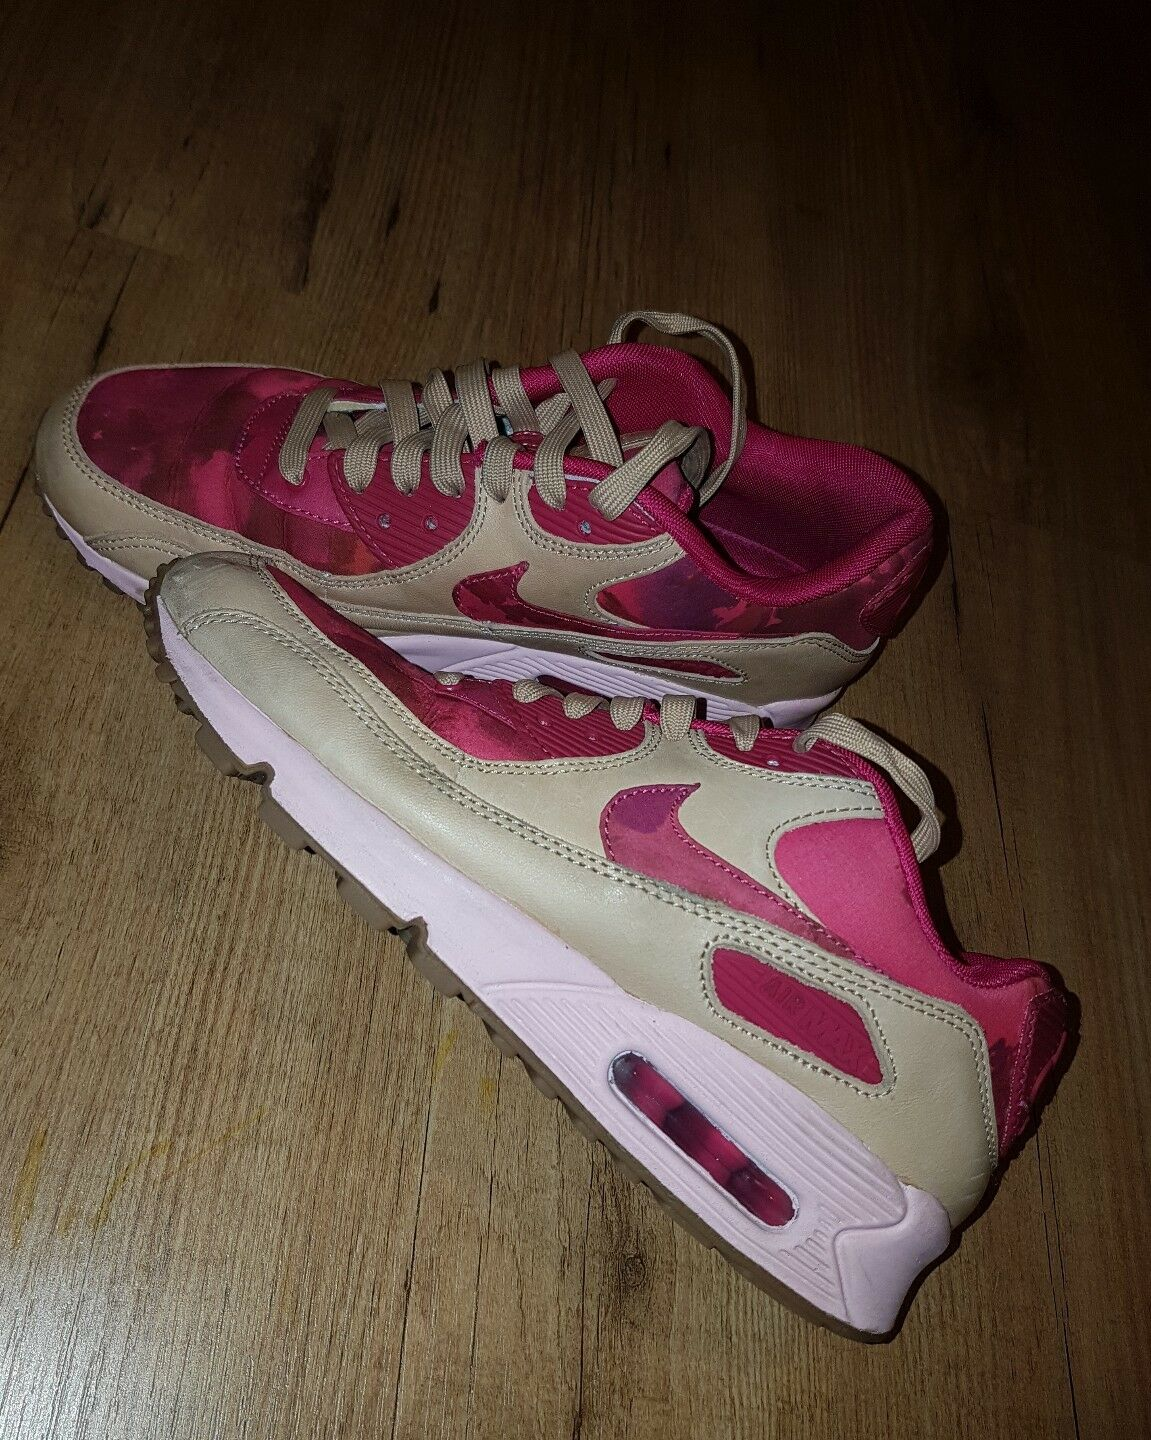 NIKE AIR MAX 90 LIBERTY  LONDON   555283-600  Größe uk4.5   eu 38 us7 b54bdf